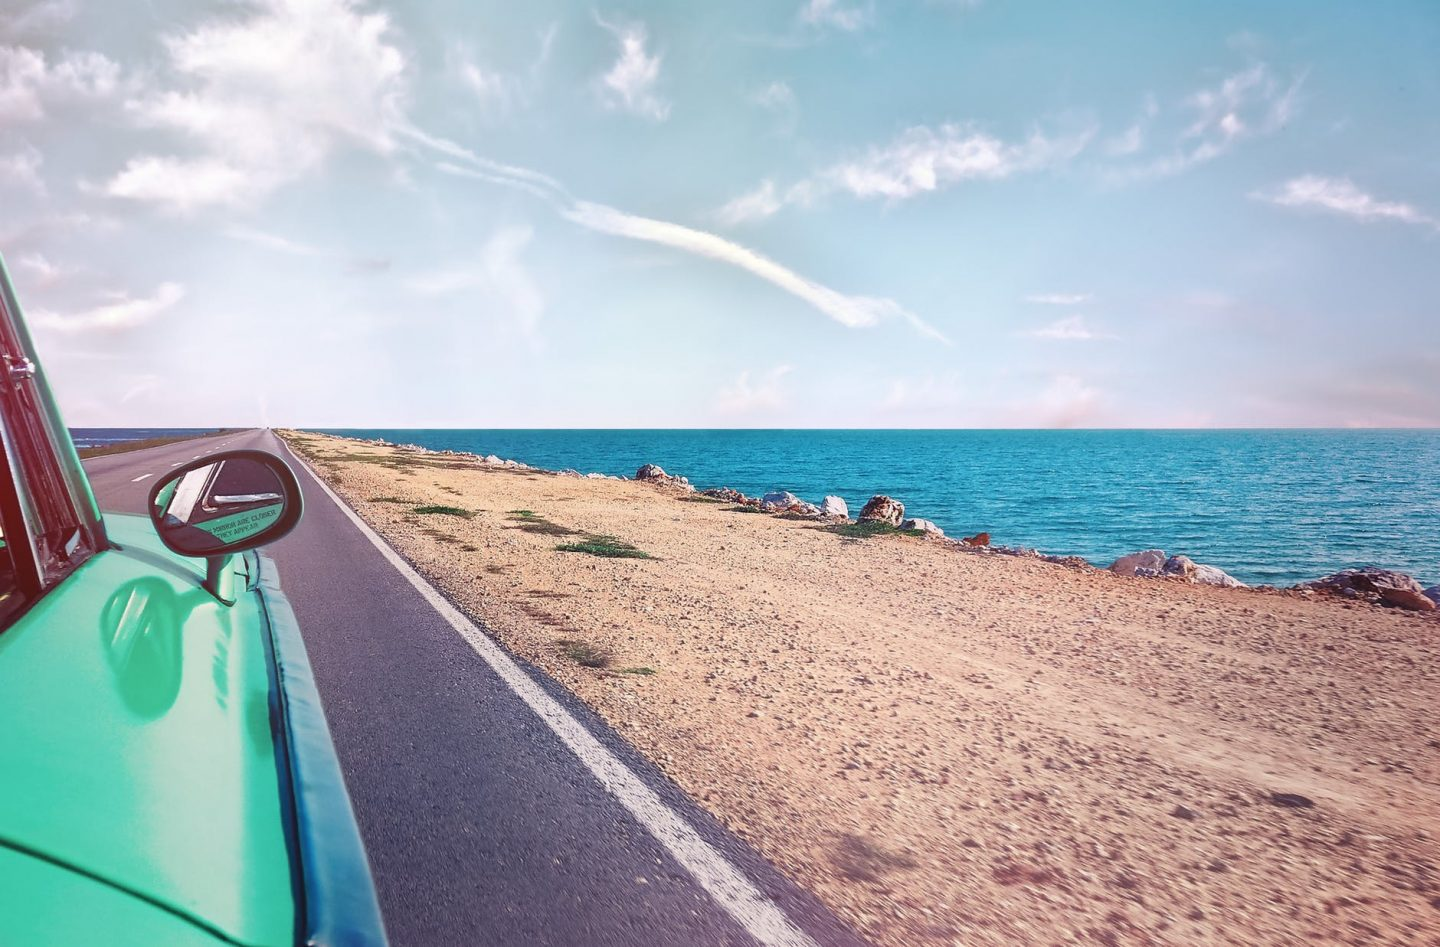 Prepping Your Car for a Safe, Carefree Road Trip